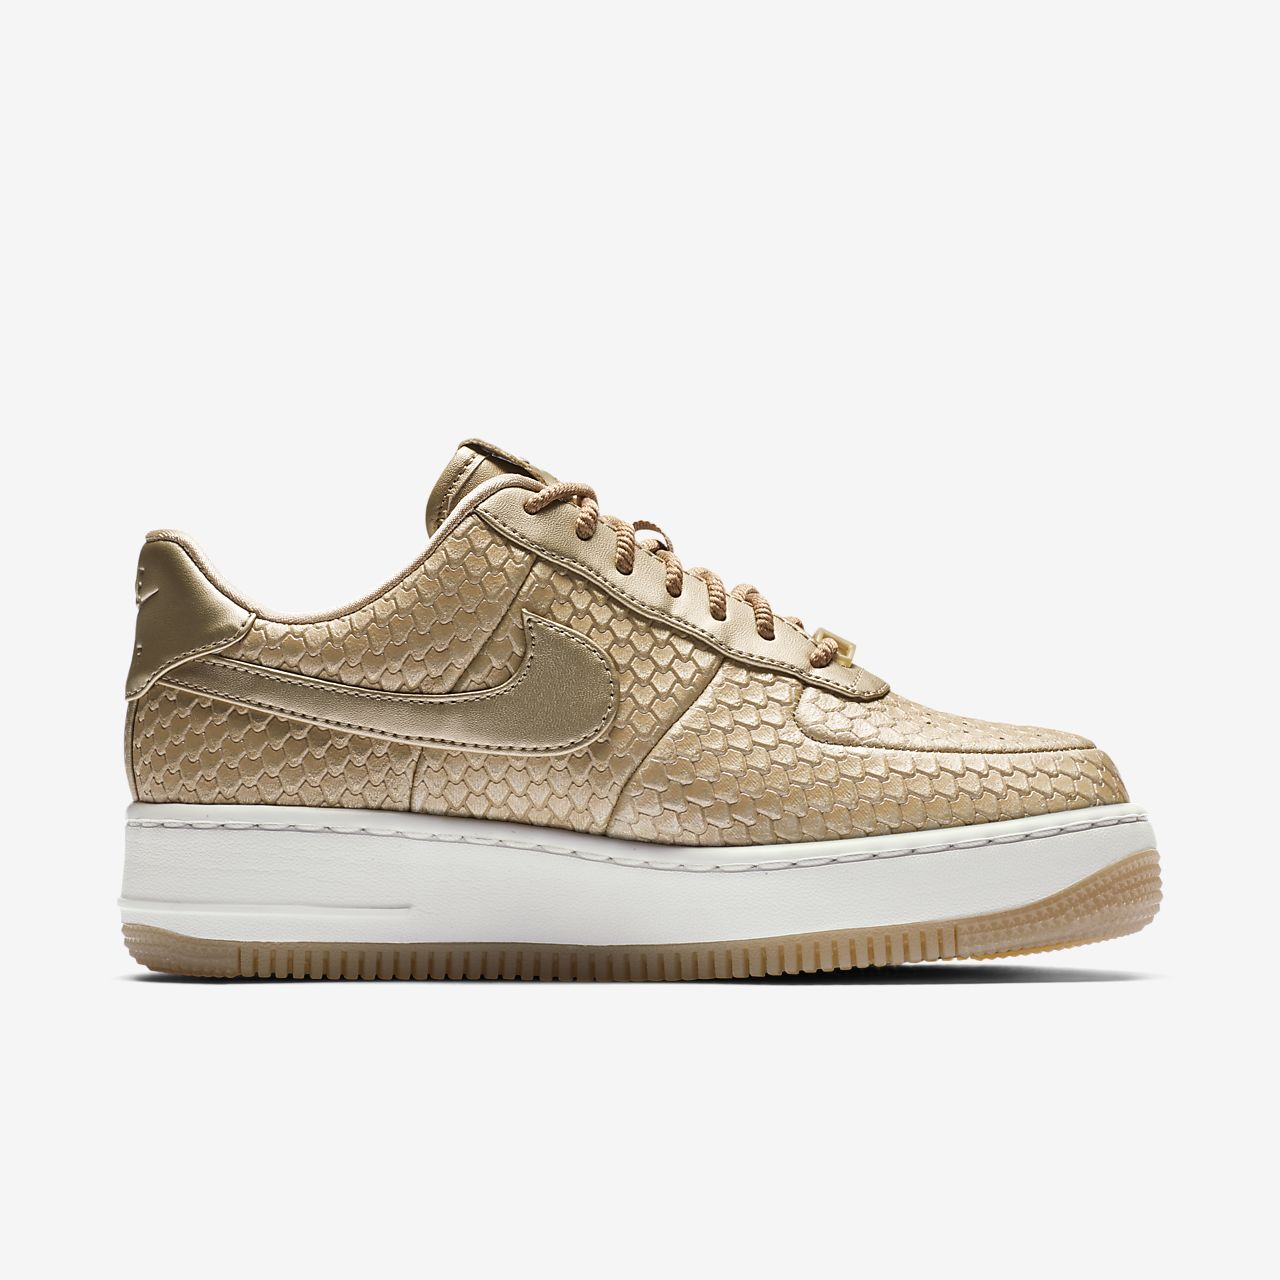 nike air force 1 premium women's nz